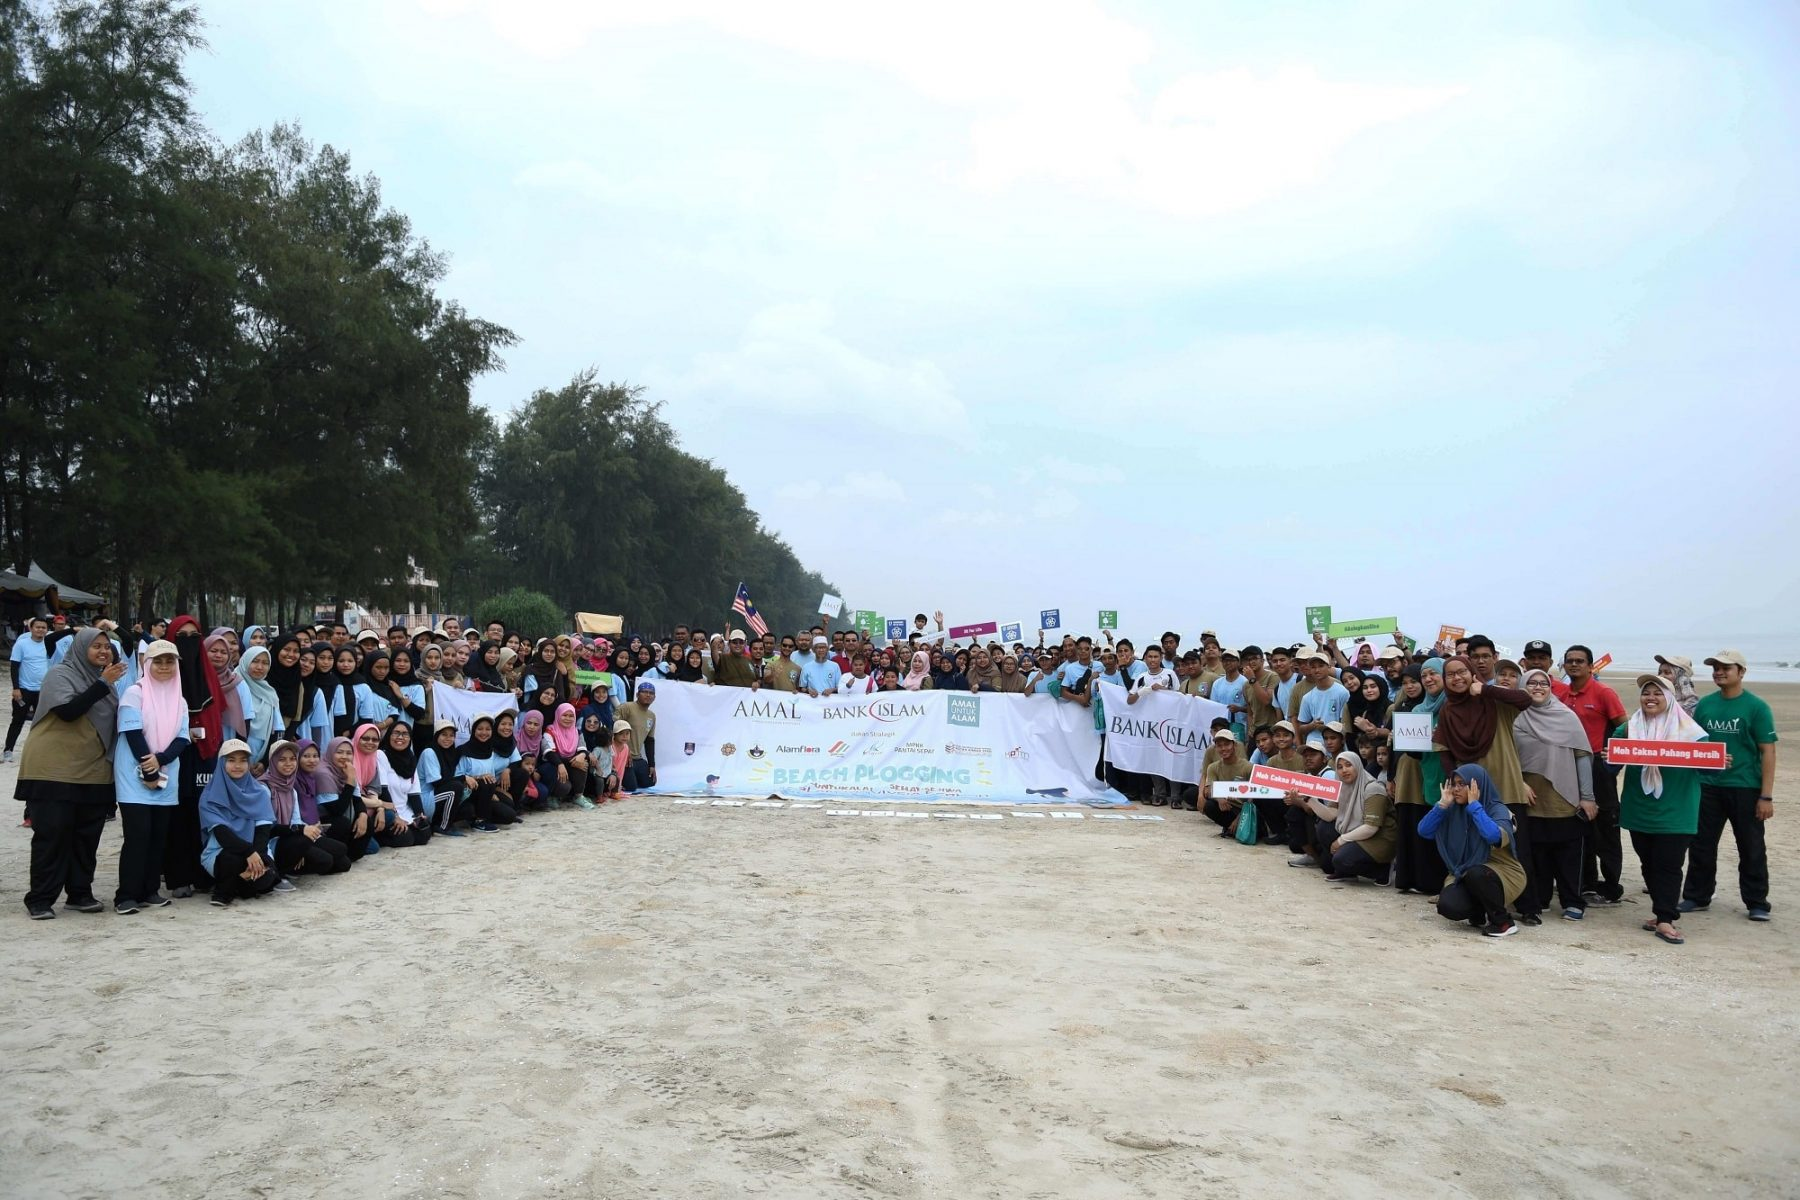 Bank Islam's Beach Plogging Event At Sepat Beach Successfully Collected 1 Tonne Of Litter In An Hour